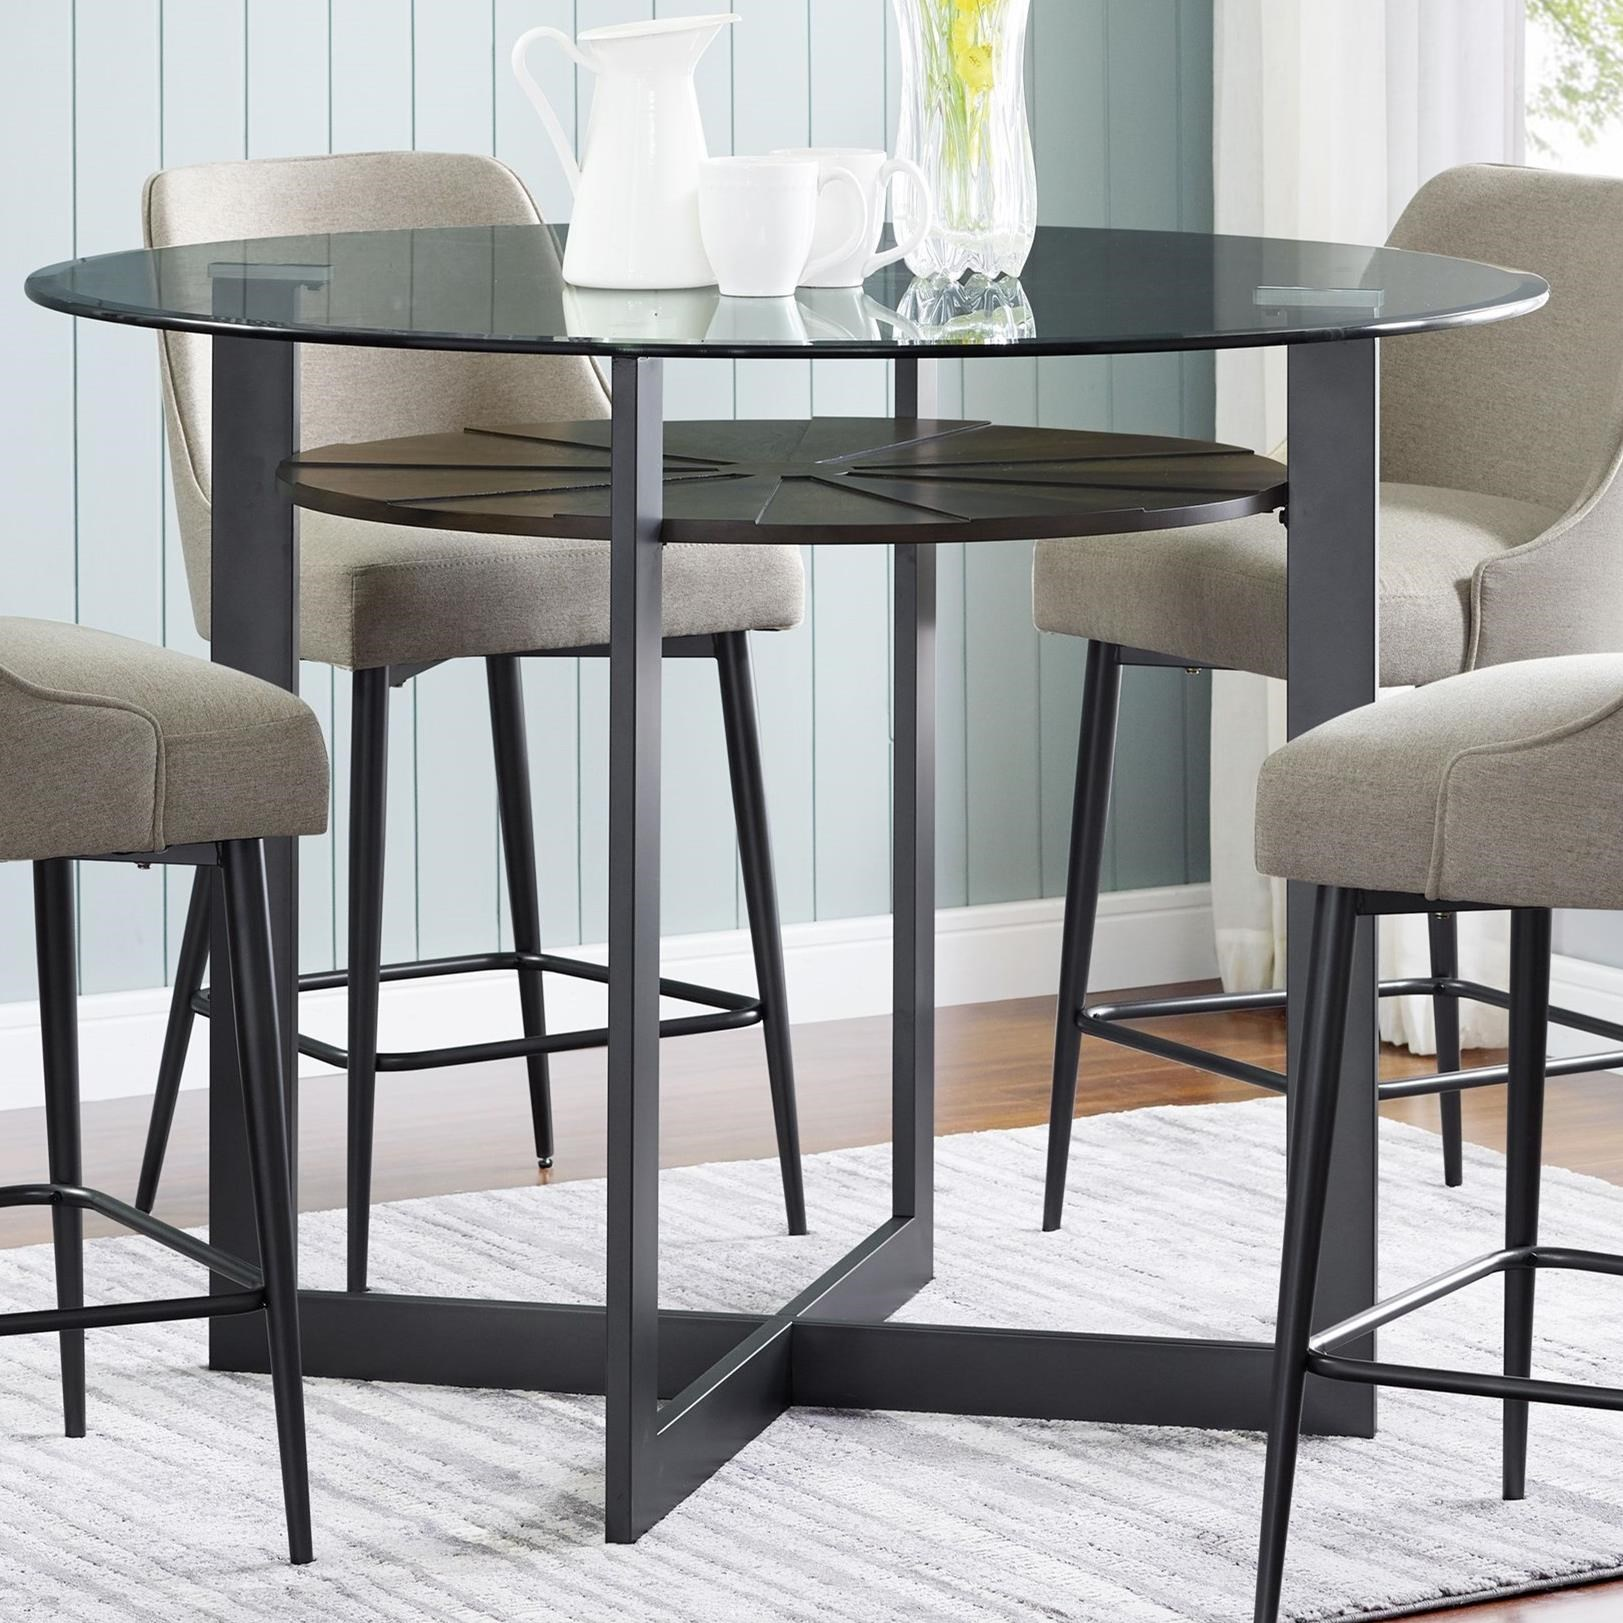 Olson SS Round Glass Counter Table by Steve Silver at Rooms for Less